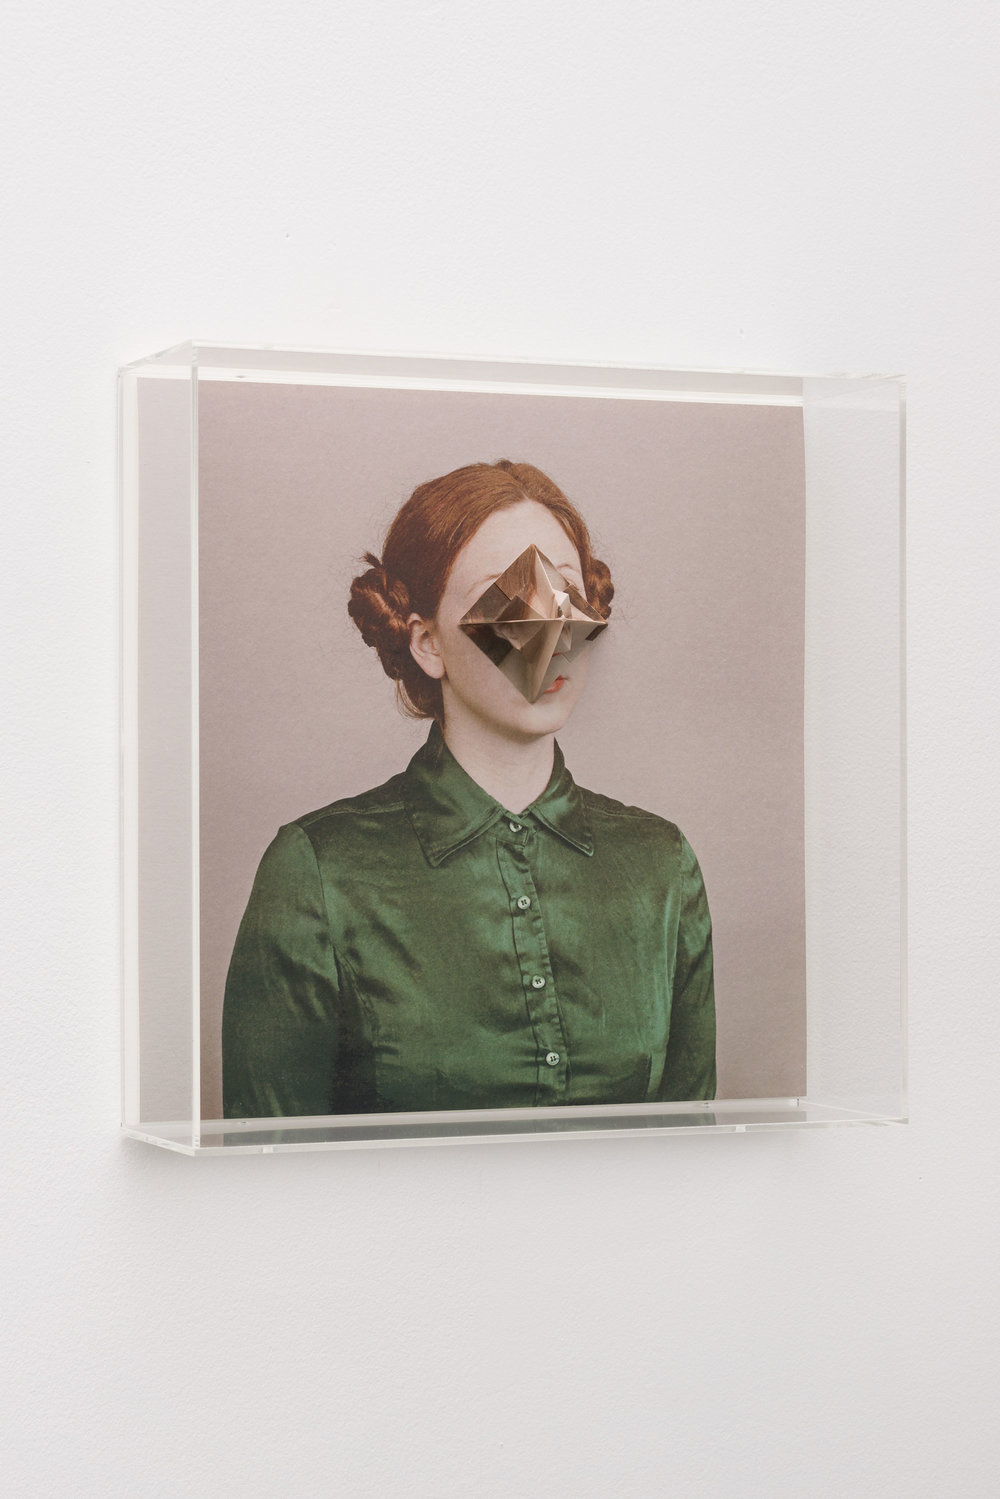 Alma Haser,  Patient No. 16 HD (Isley) , 2016  Digital pigment print with folded digital pigment print sculpture, plexiglass box, 30 x 30 x 10 cm (approx. 12 x 12 x 4 in), edition of 5   Inquire